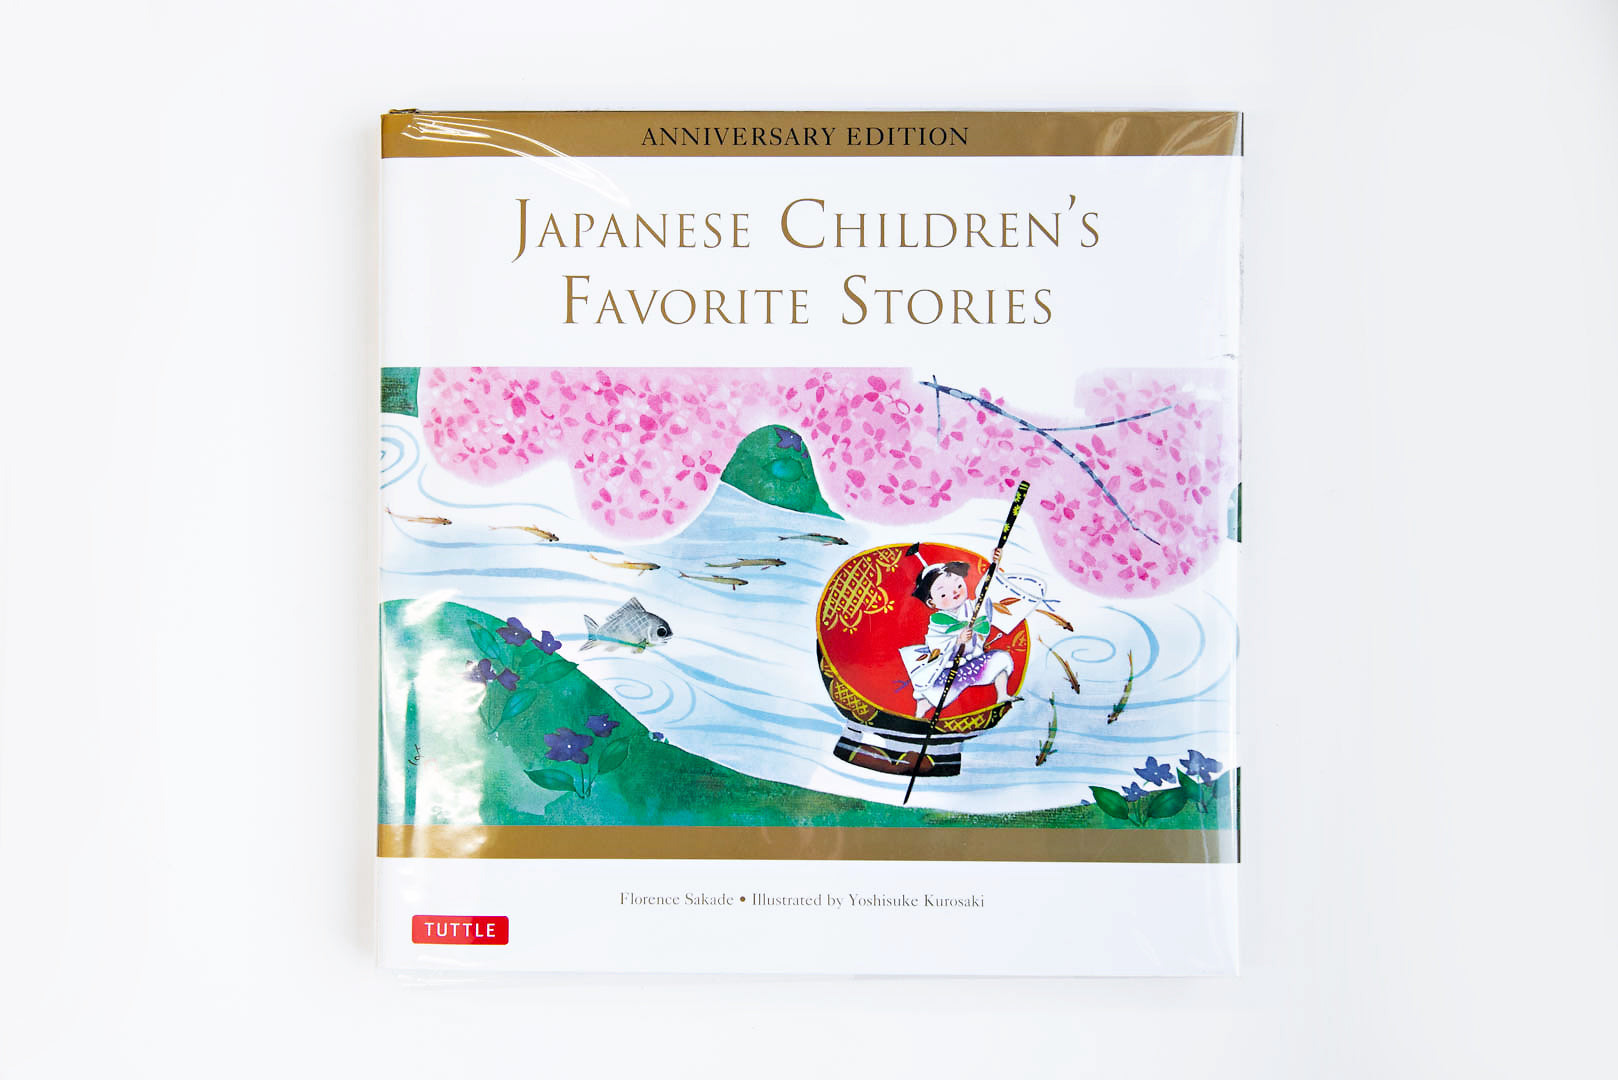 Japanese Children's Favorite Stories (Anniversary Edition)